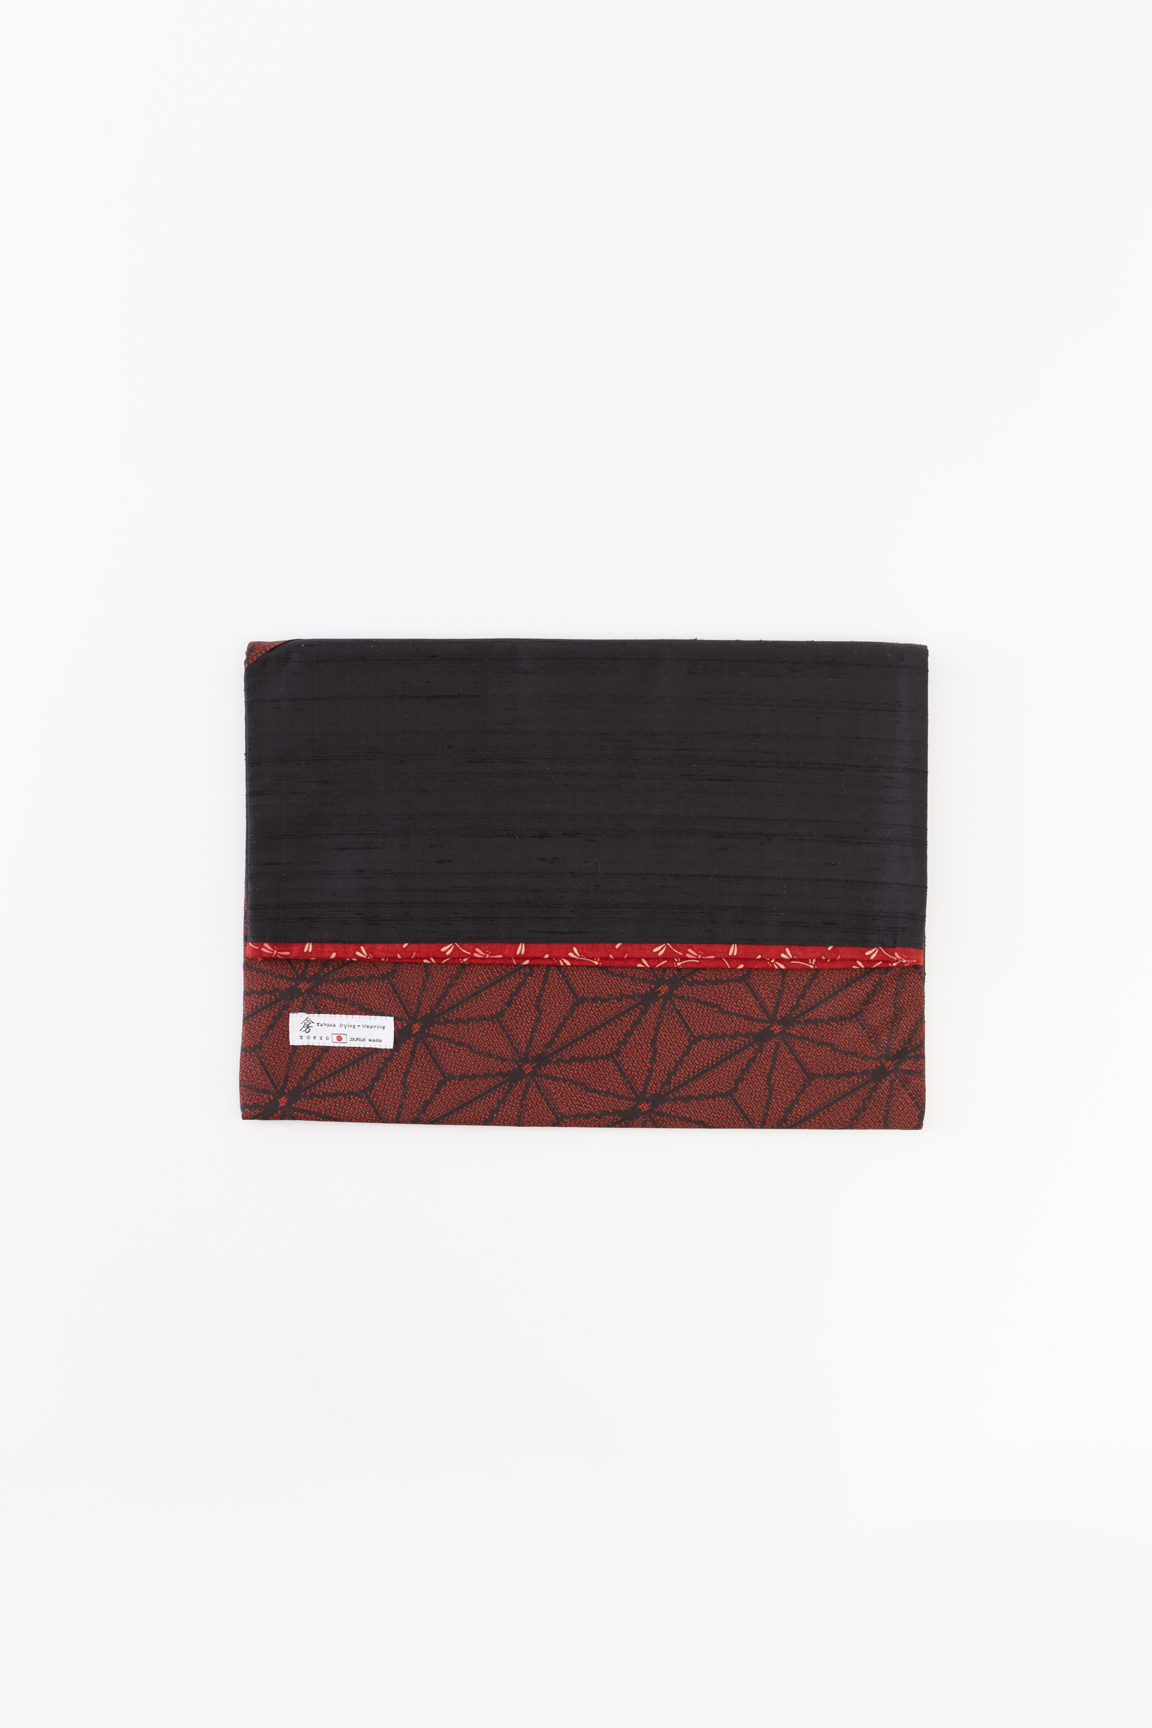 Clutch bag(black)